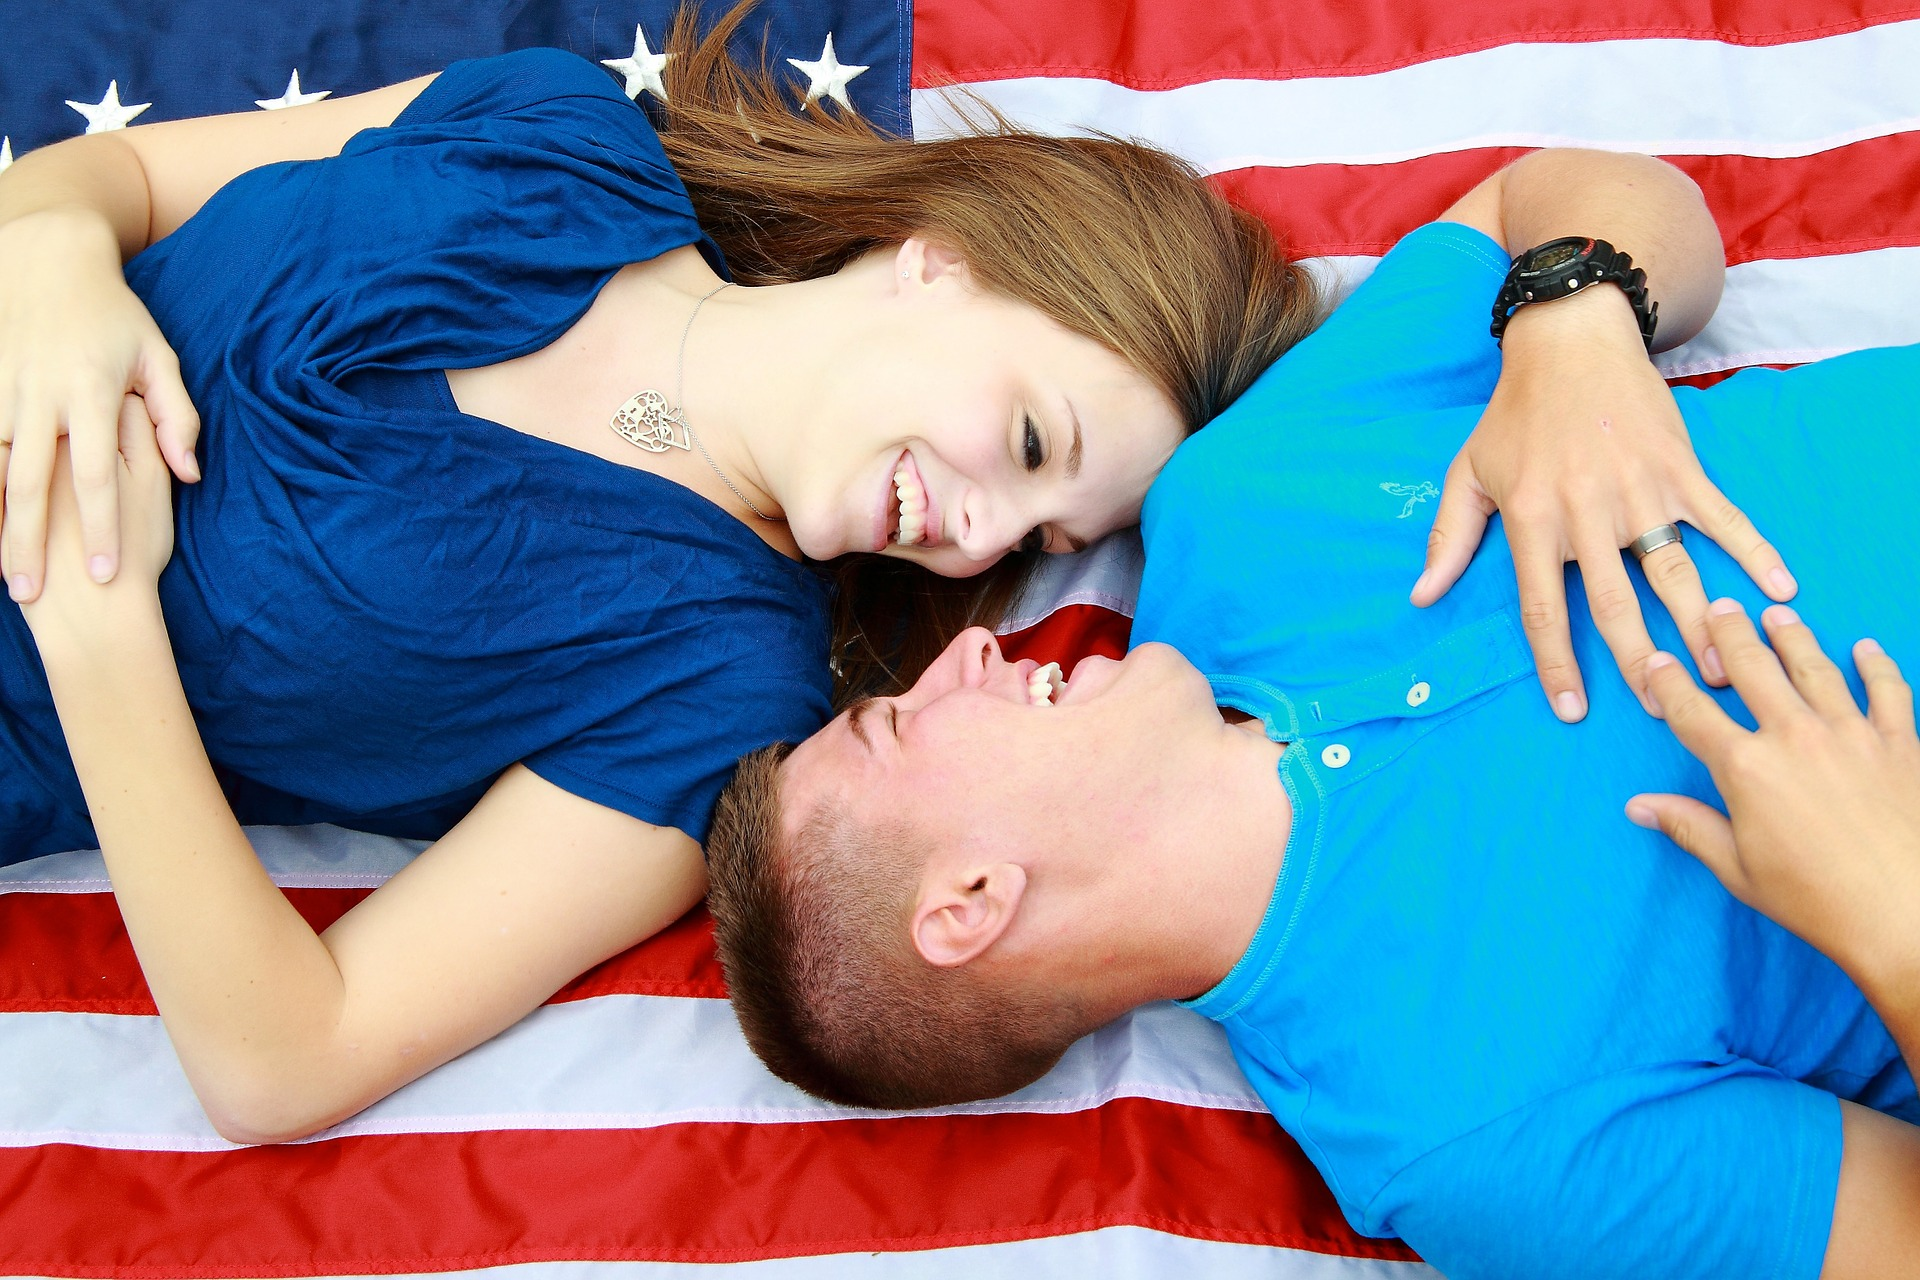 Top 5 ways to appreciate your spouse! Magic wand